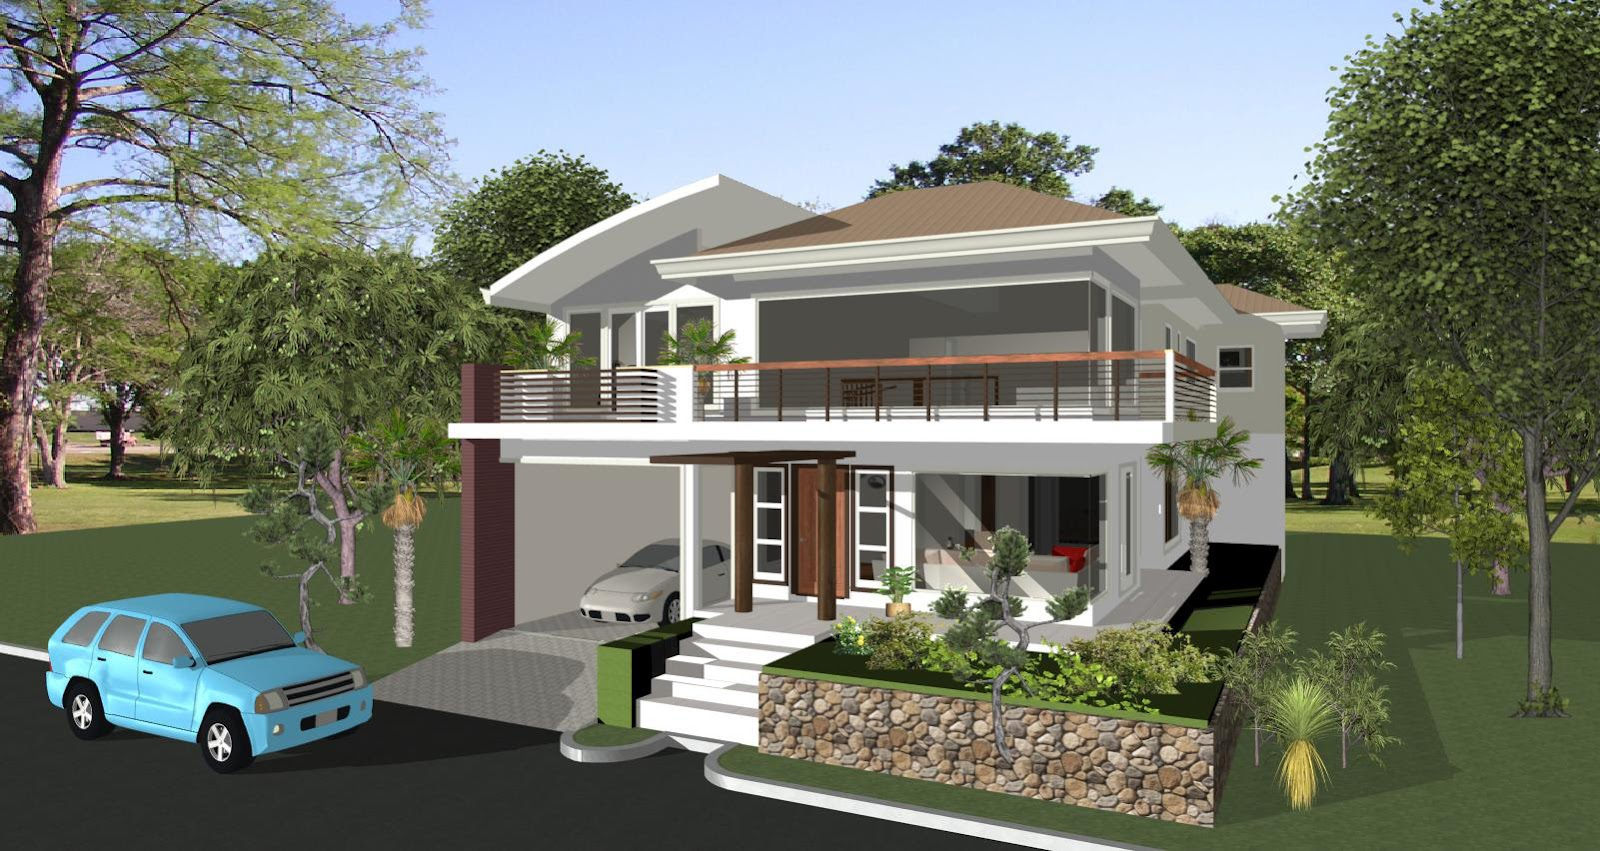 House designs in the philippines in iloilo by erecre group realty design and construction - Website for home design ...